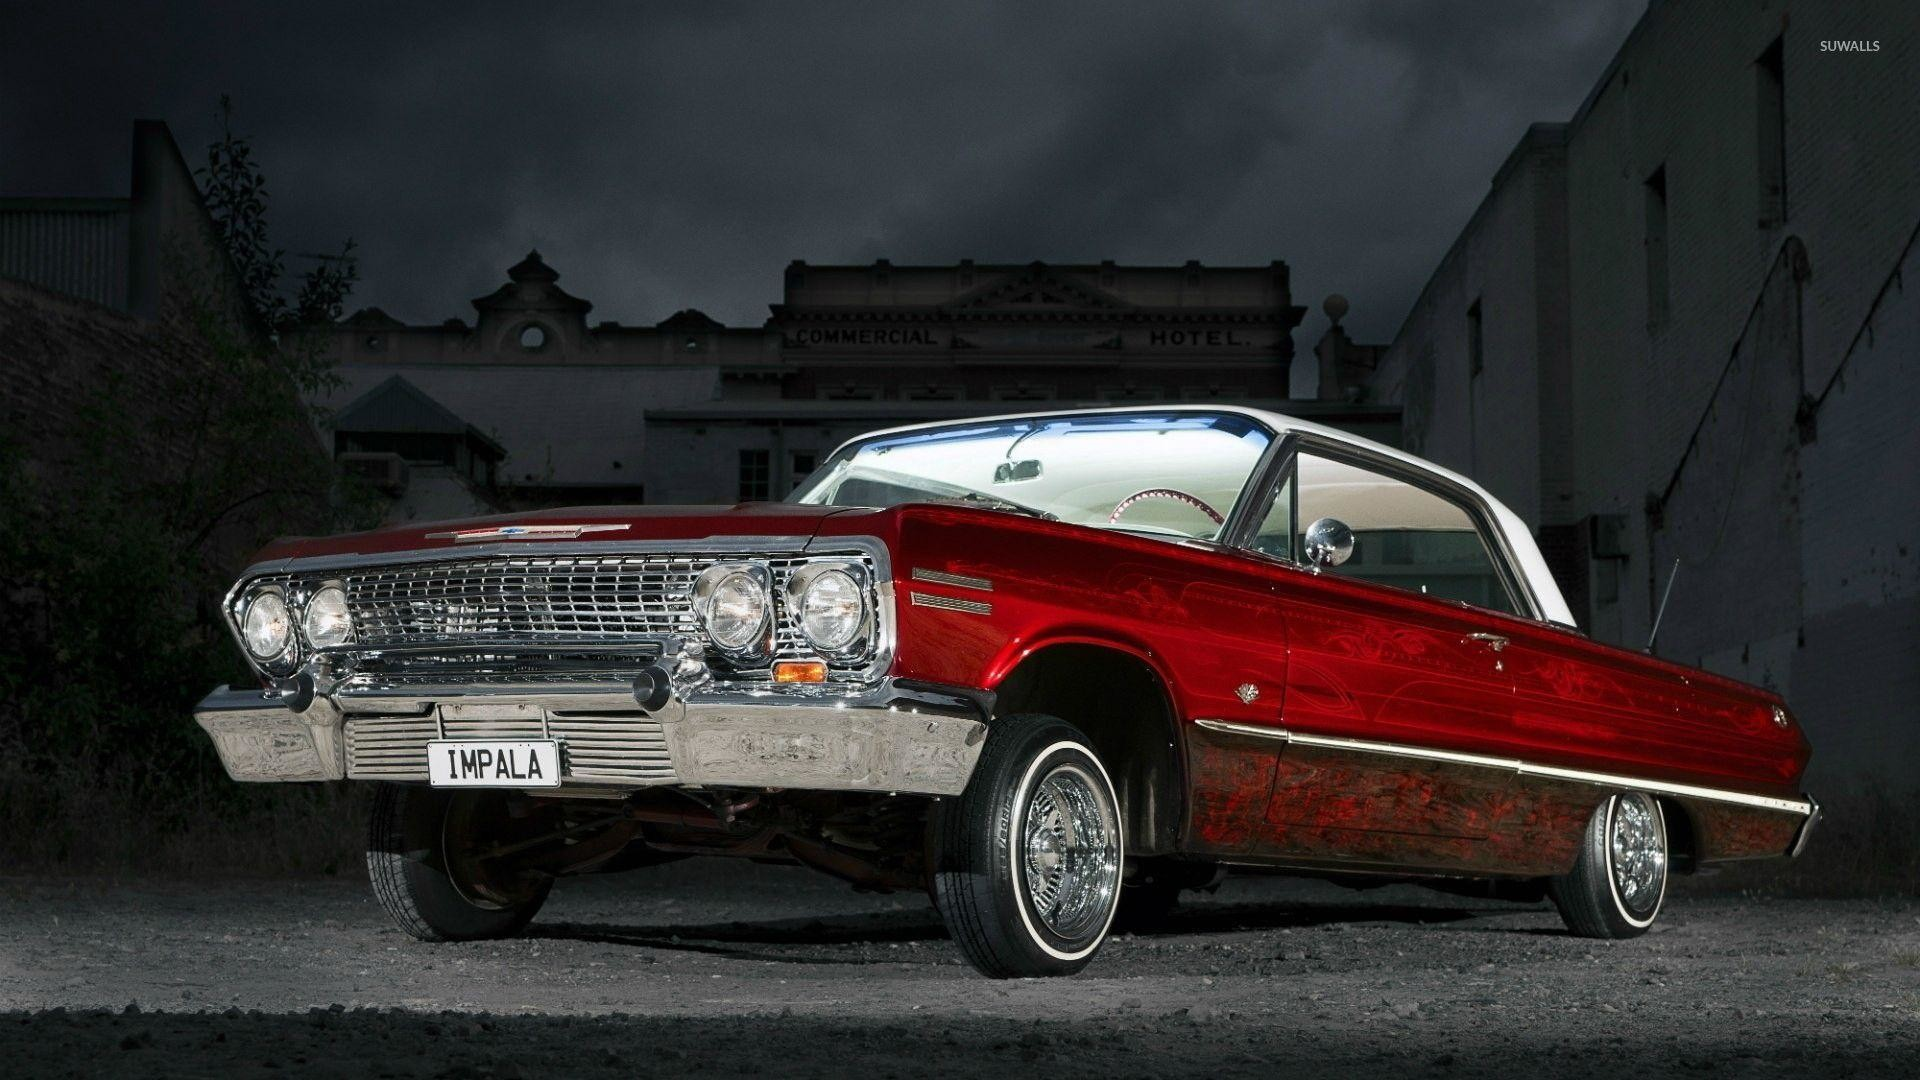 chevrolet impala wallpapers 61 images